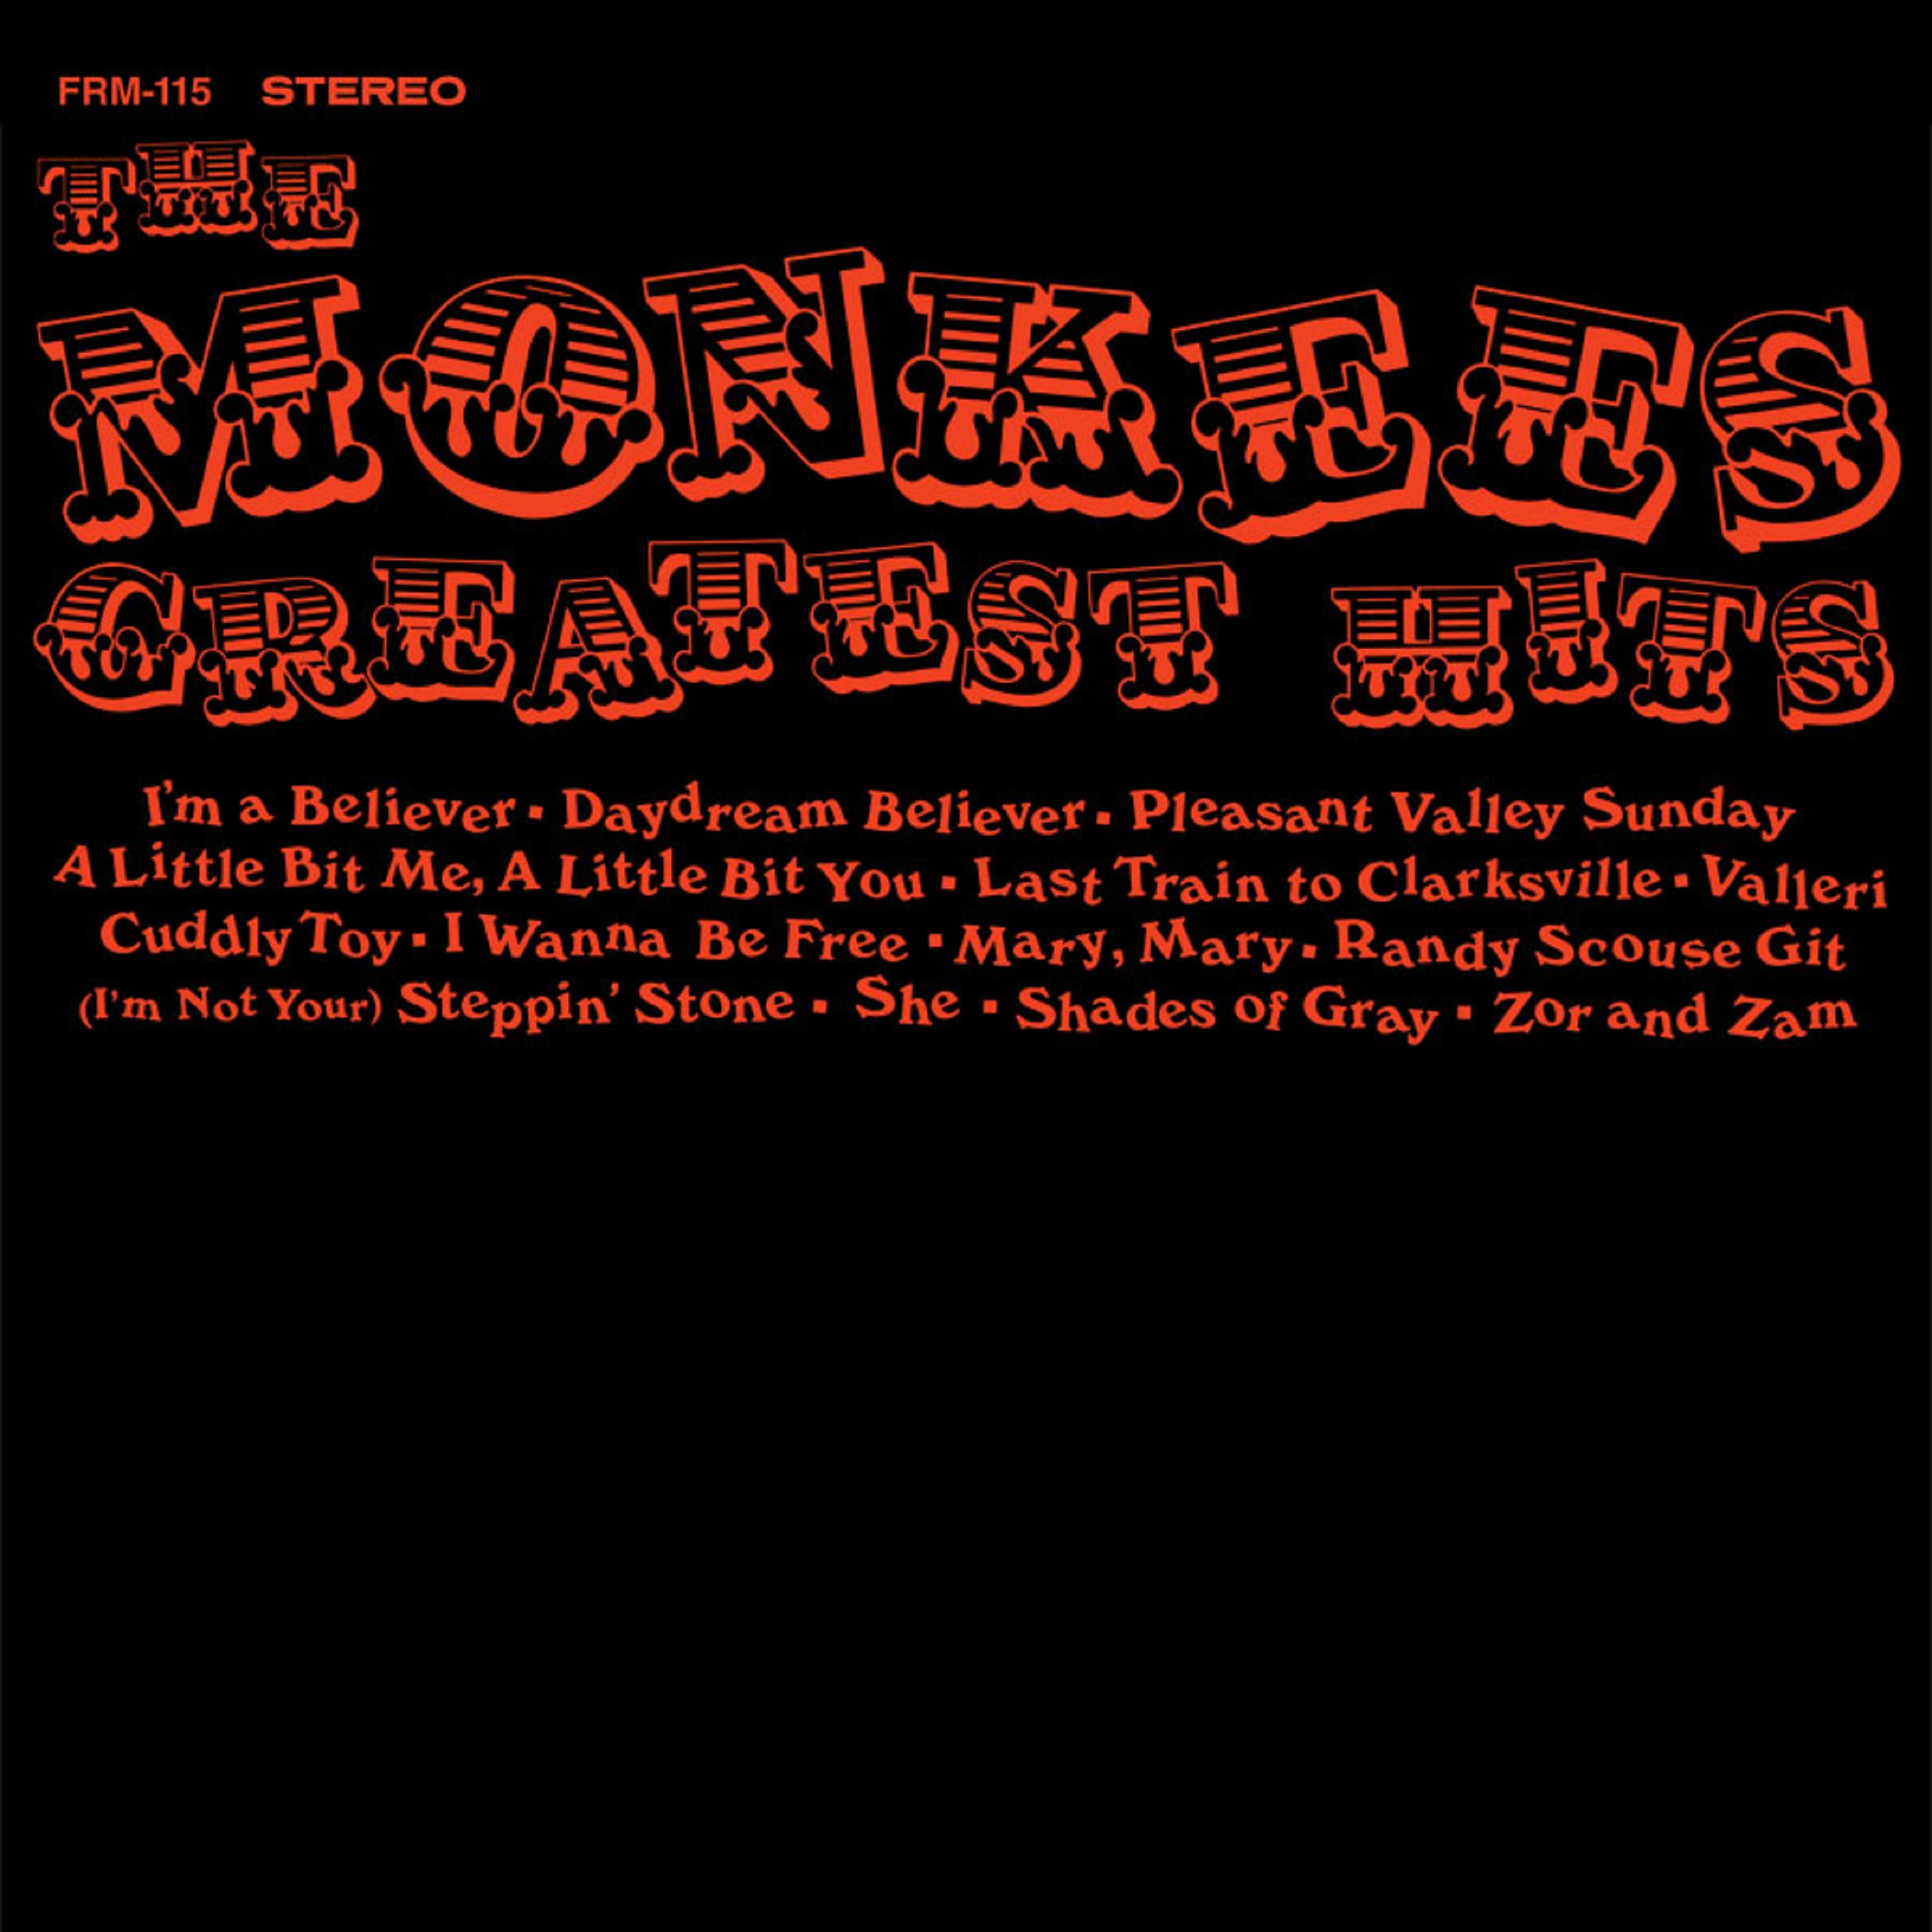 The Monkees - Greatest Hits (180 Gram Orange Audiophile Vinyl/Limited Anniversary Edition)